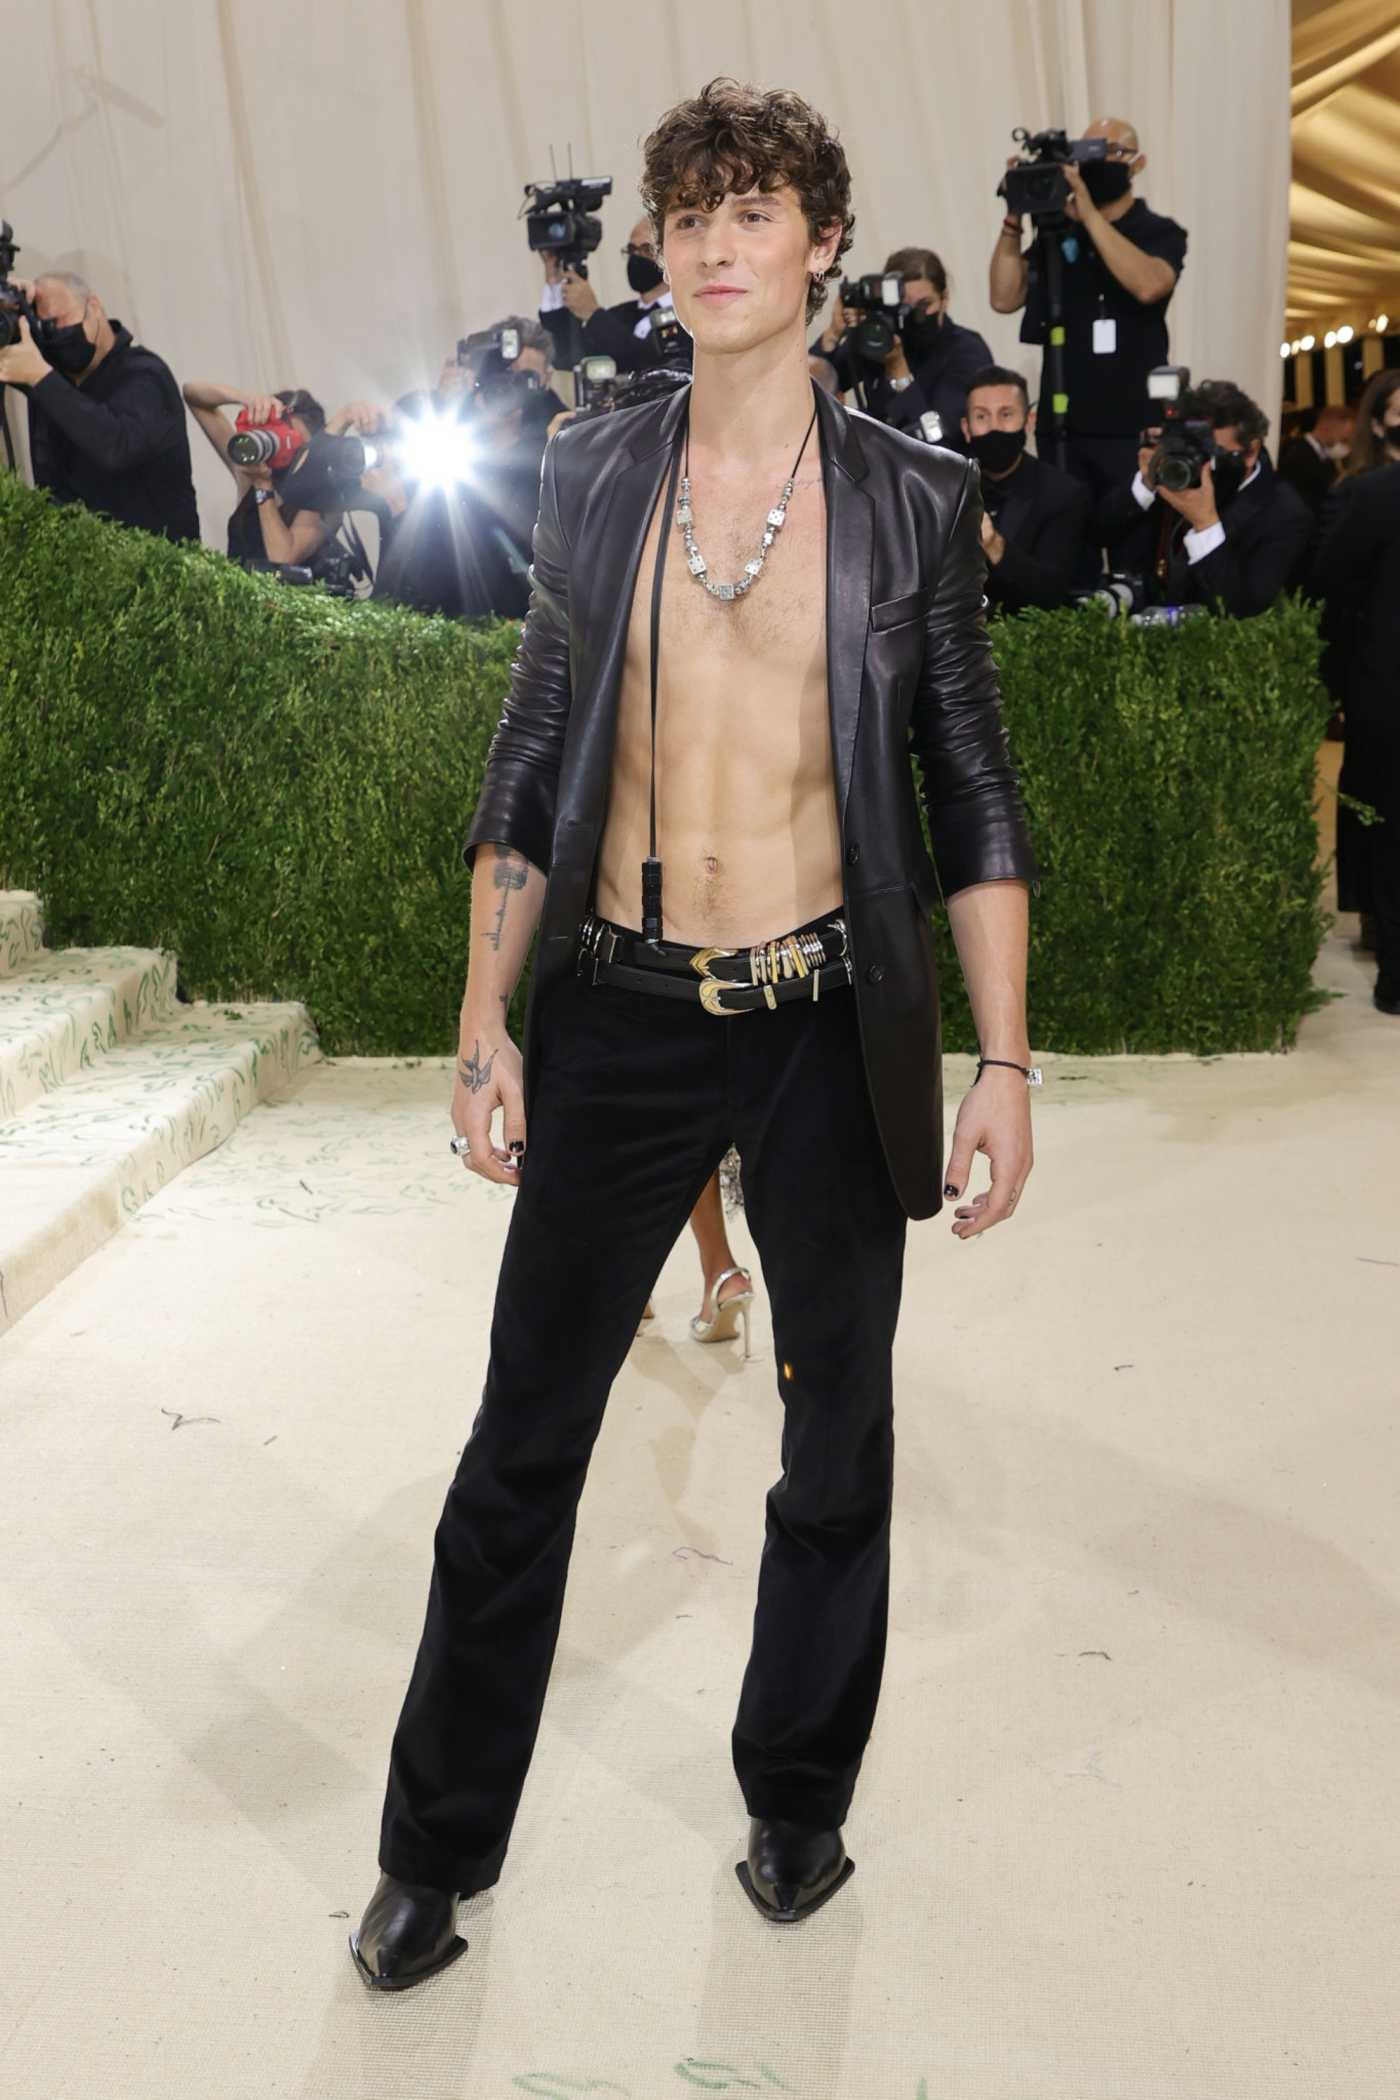 Shawn Mendes Attends 2021 Met Gala In America: A Lexicon of Fashion at Metropolitan Museum of Art in New York City 09/13/2021